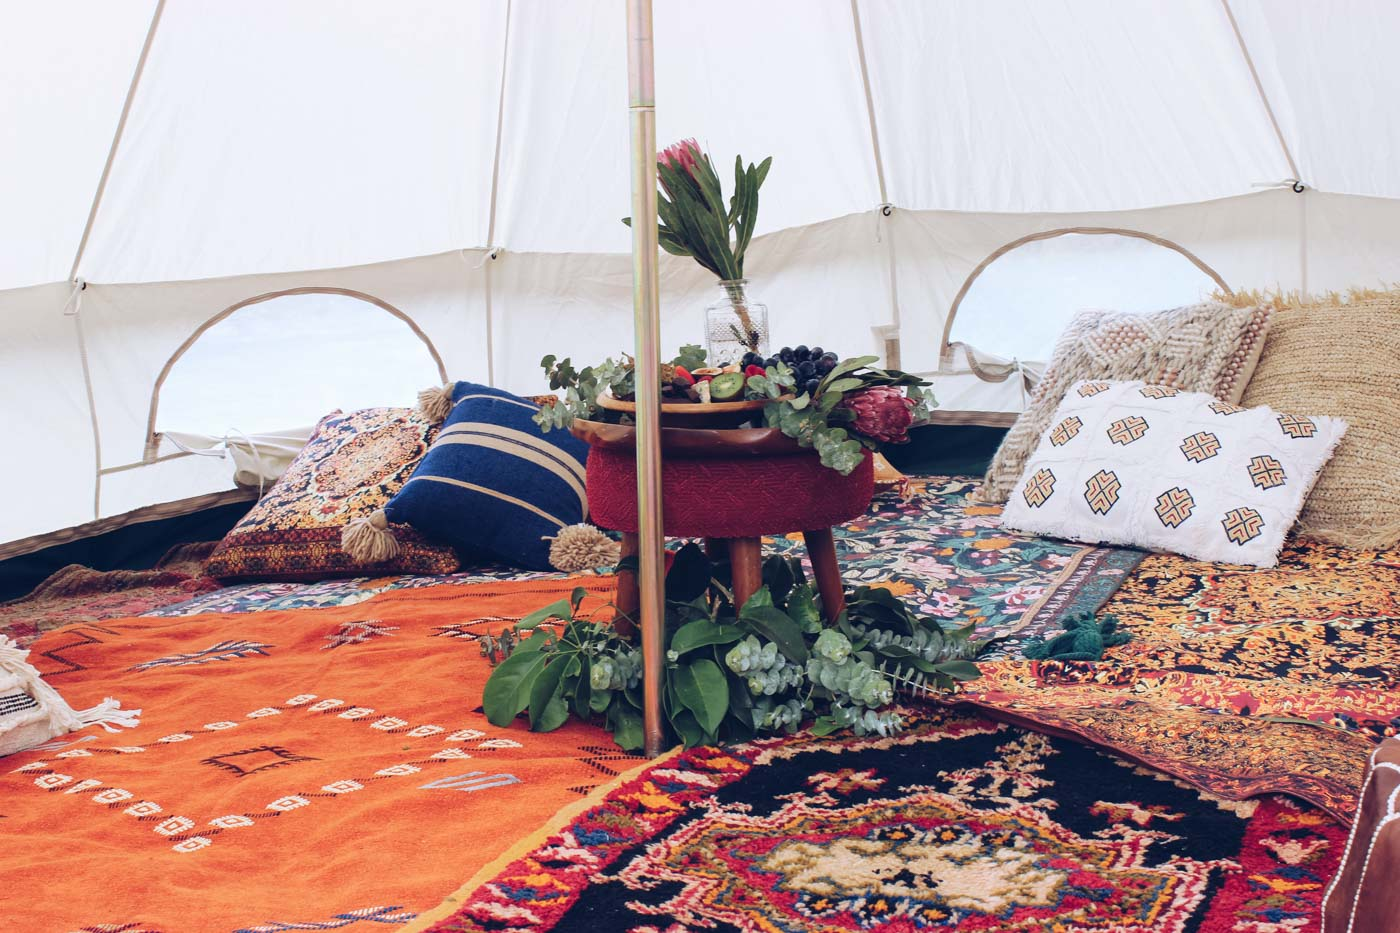 the_Collection_co_grazing_table_cairns_weddings_catering_grazing_platter_hire_pop_up_picnic_bell_tent_event_hire_styling-7-2.jpg